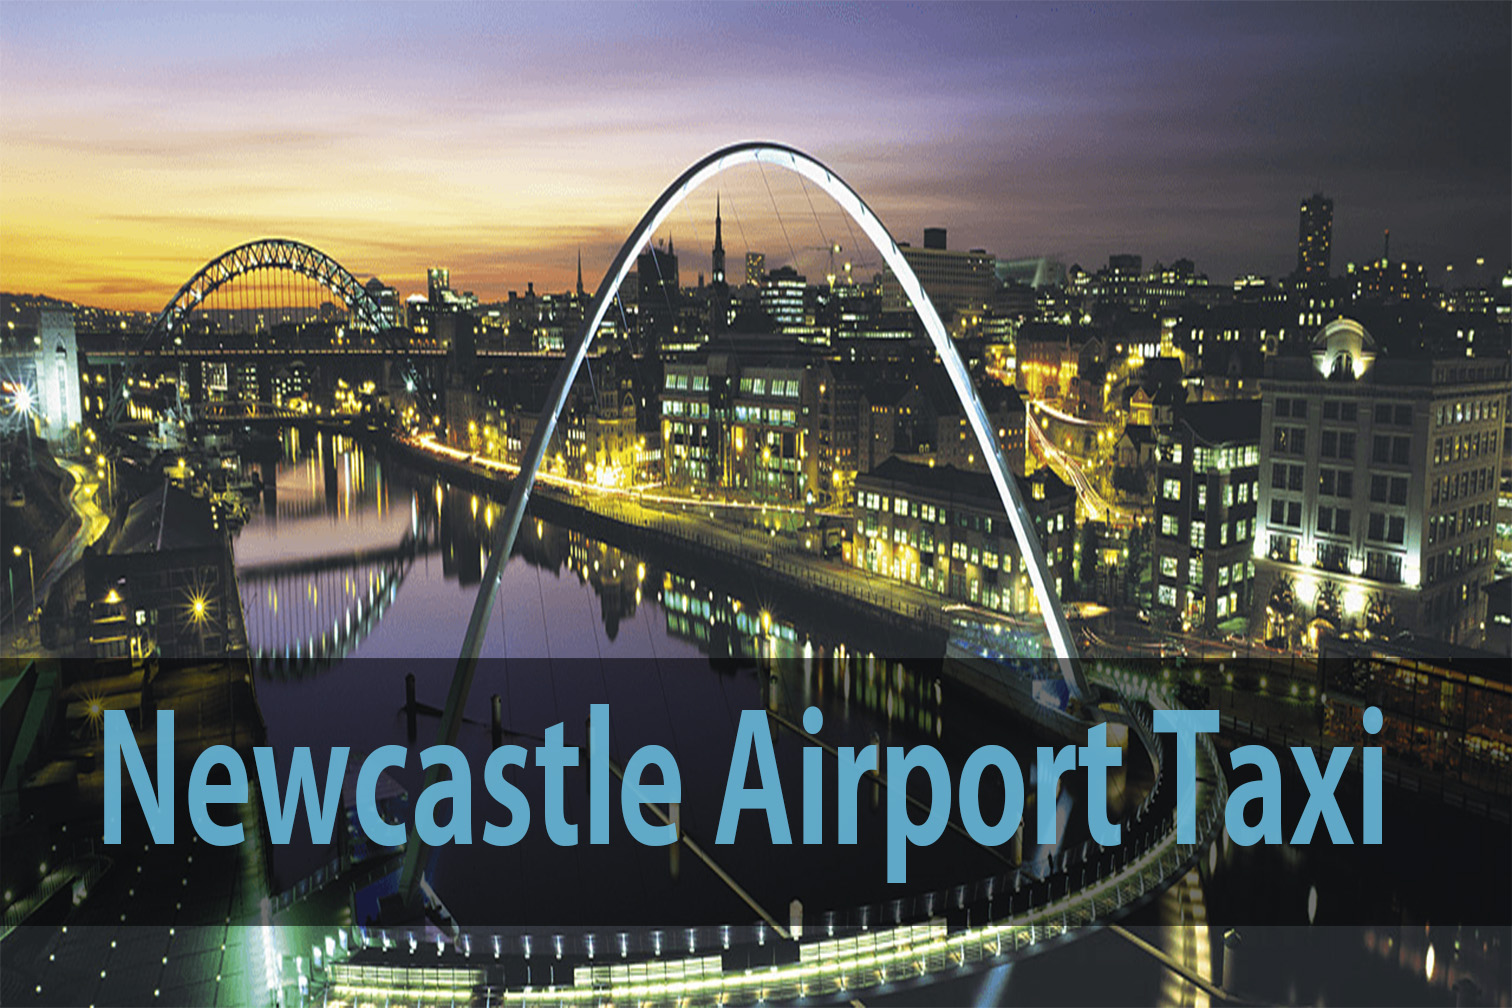 Newcastle airport taxi